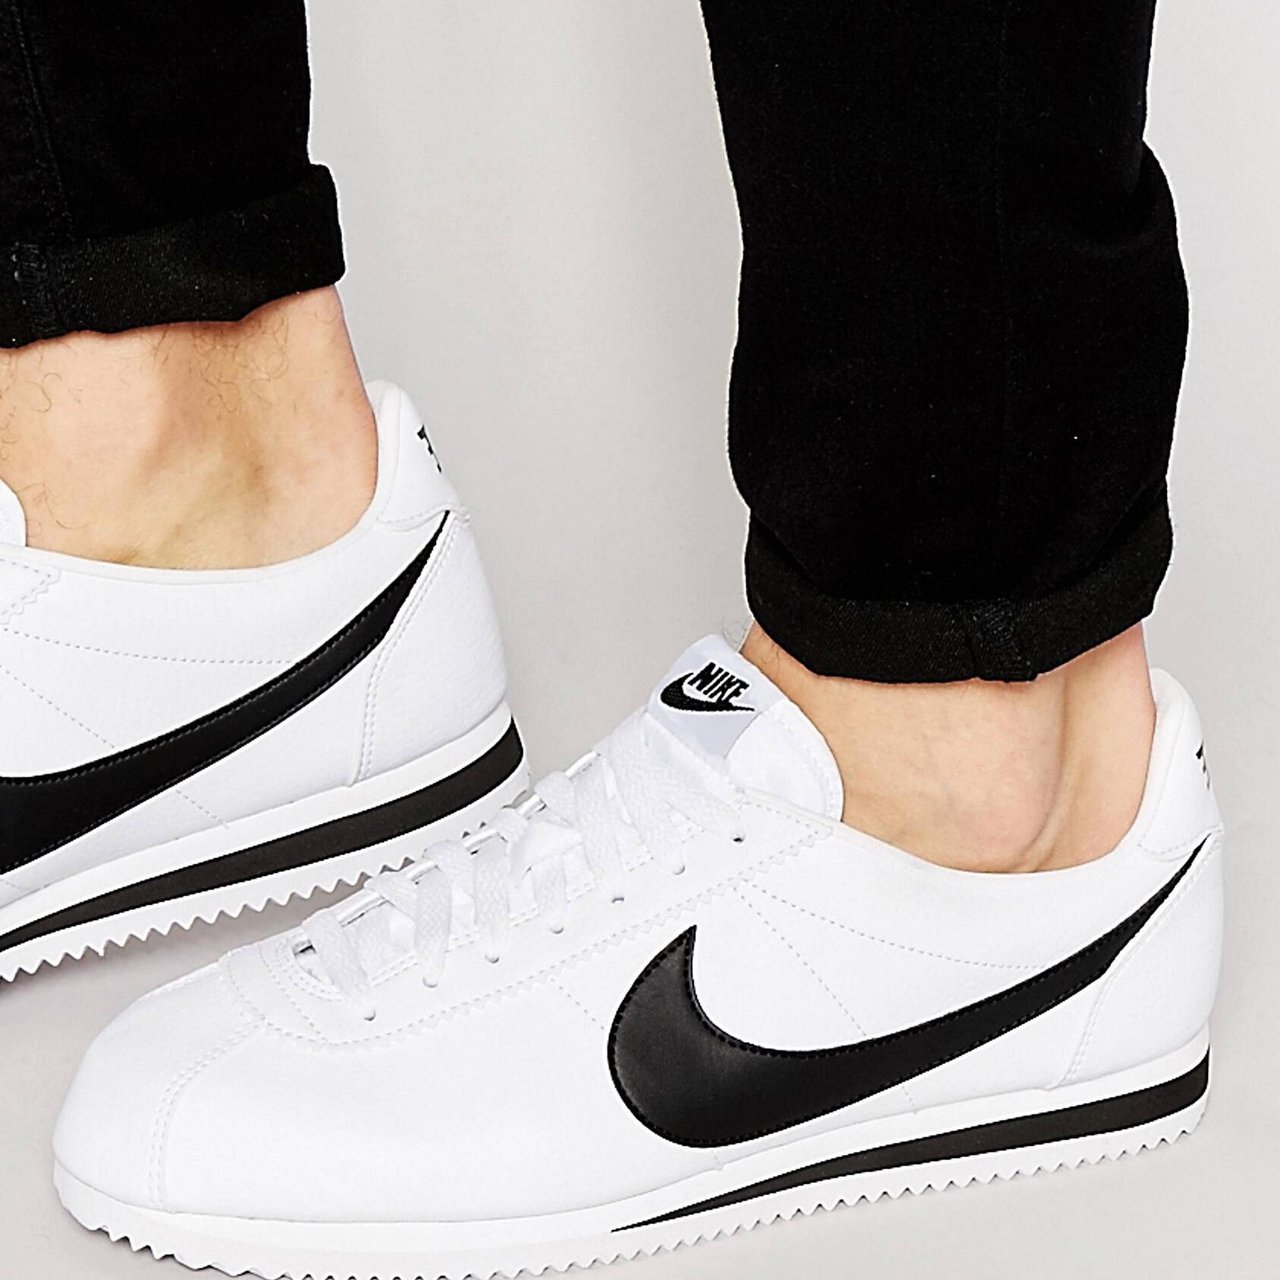 best sneakers 280b8 f2b5a Nike Cortez leather trainers in- 0